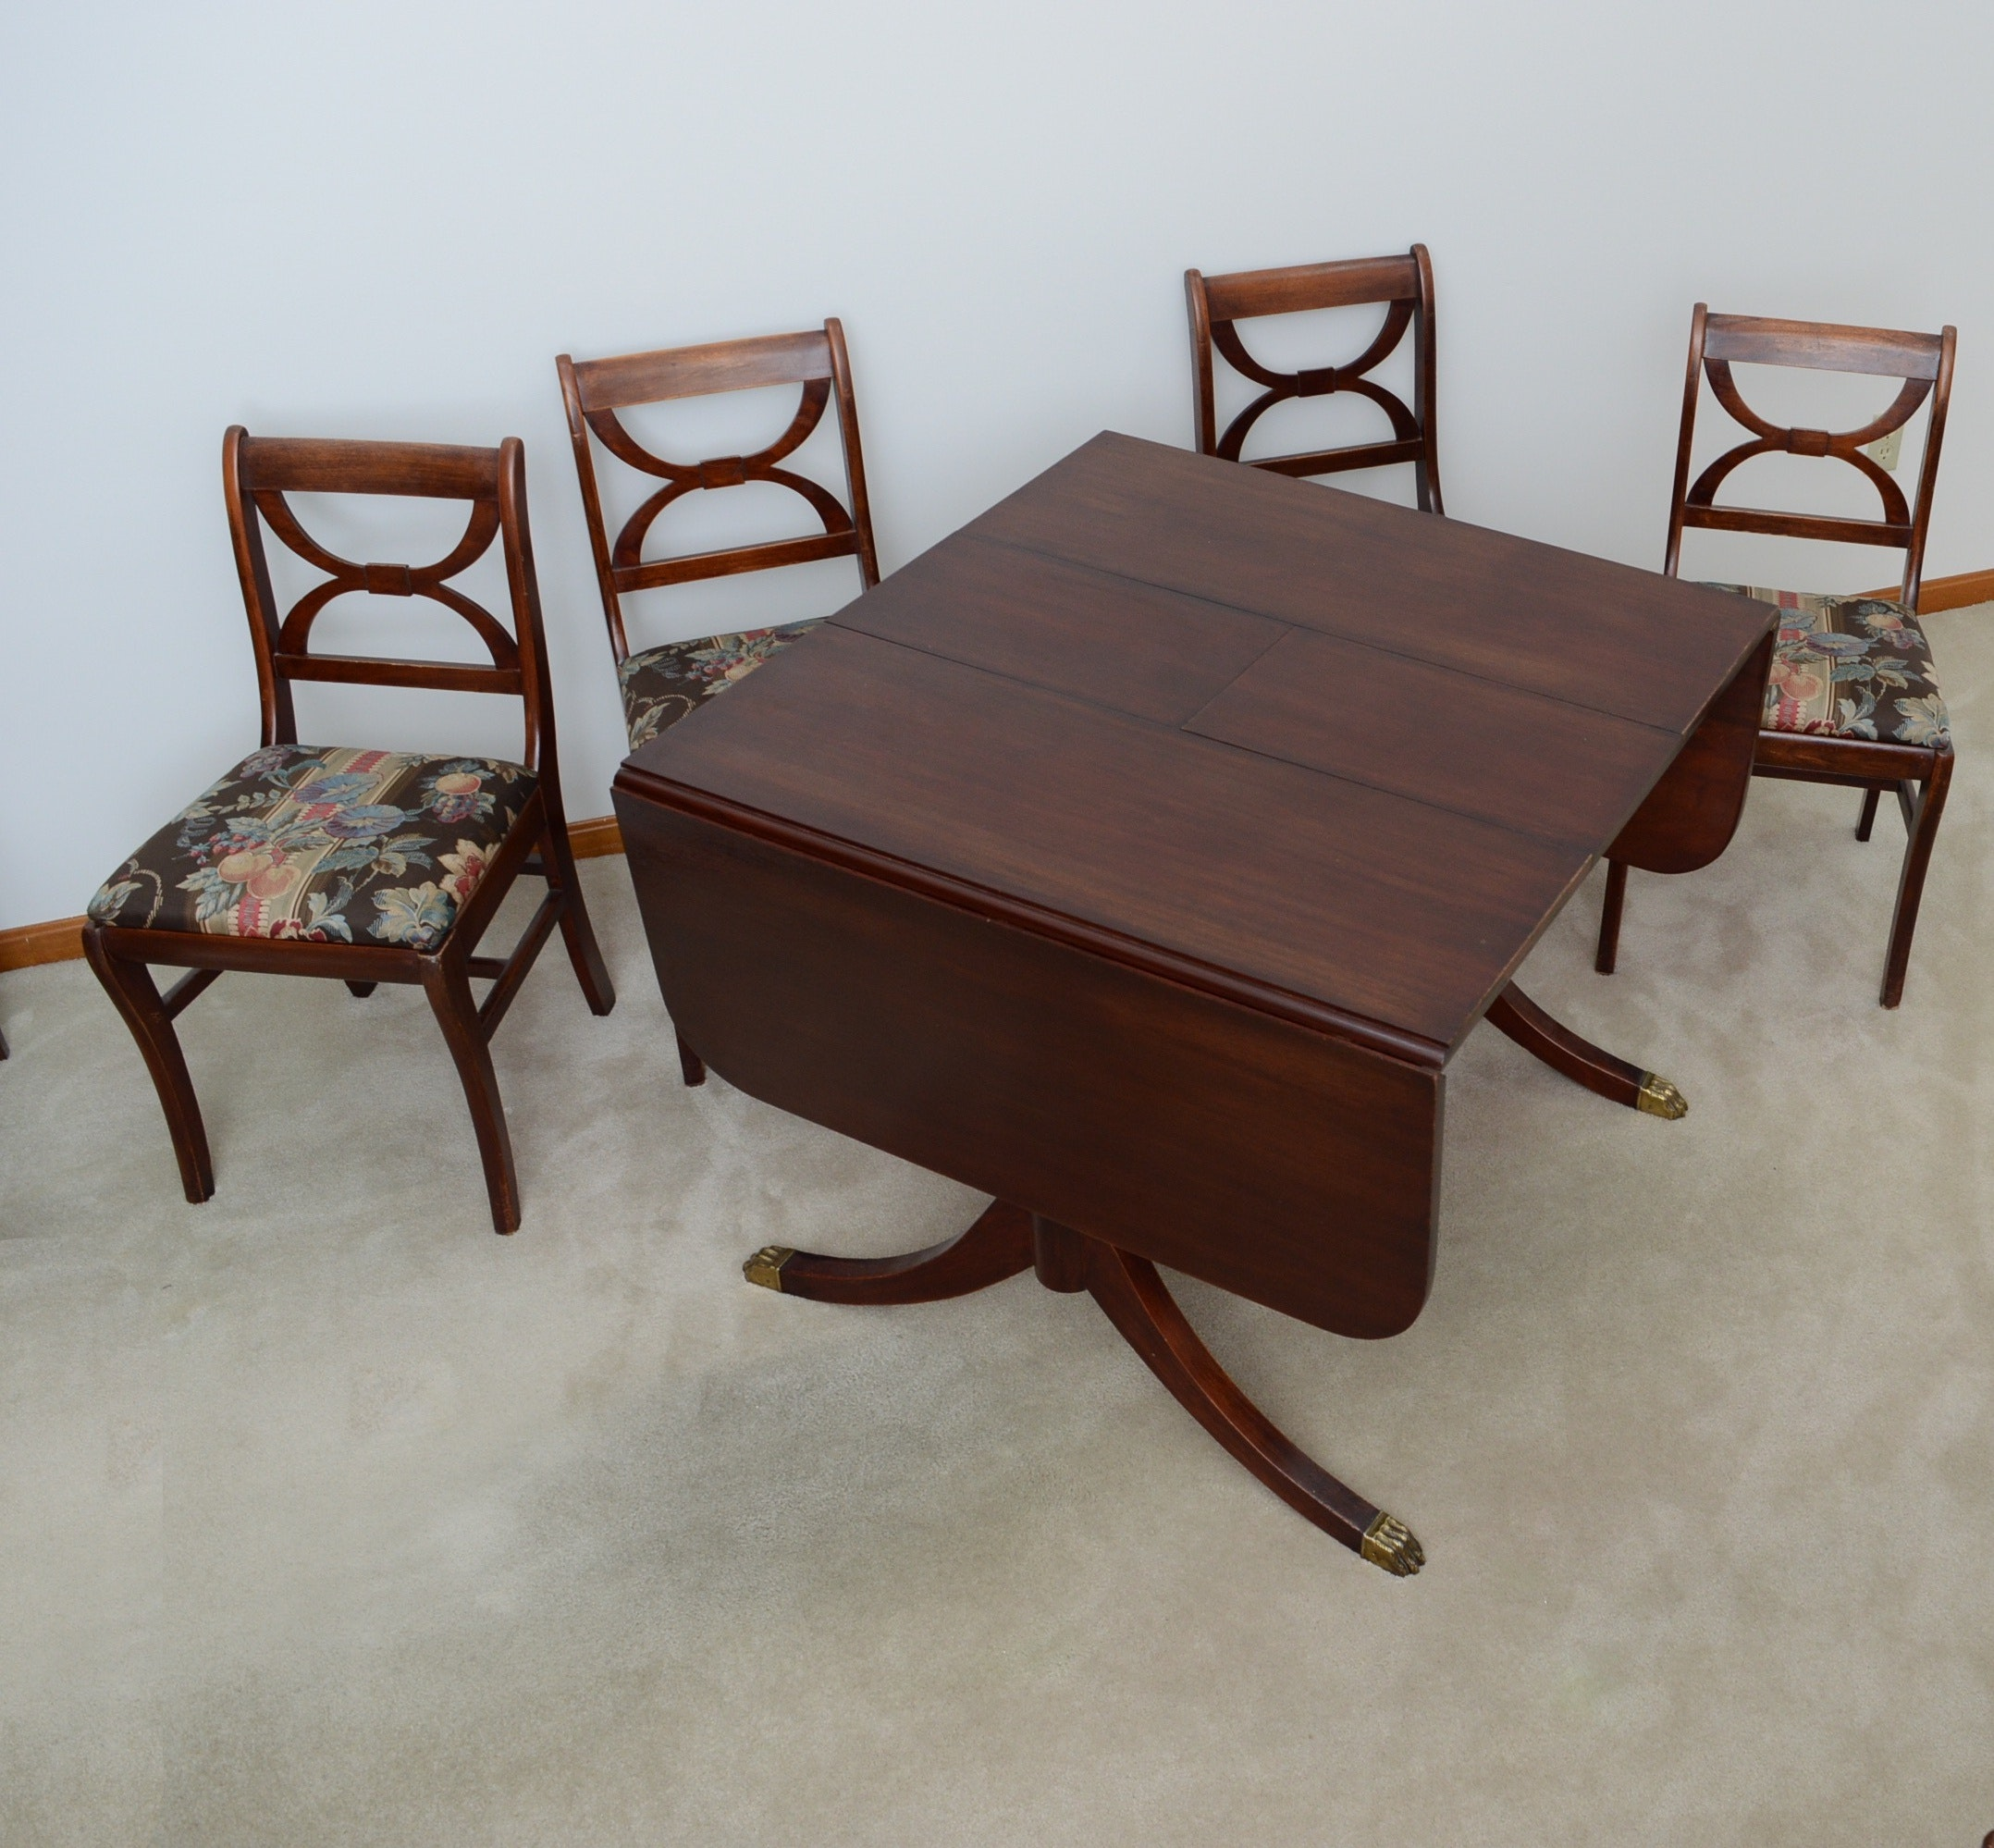 Walnut Duncan Phyfe Style Drop Leaf Table and Four Chairs